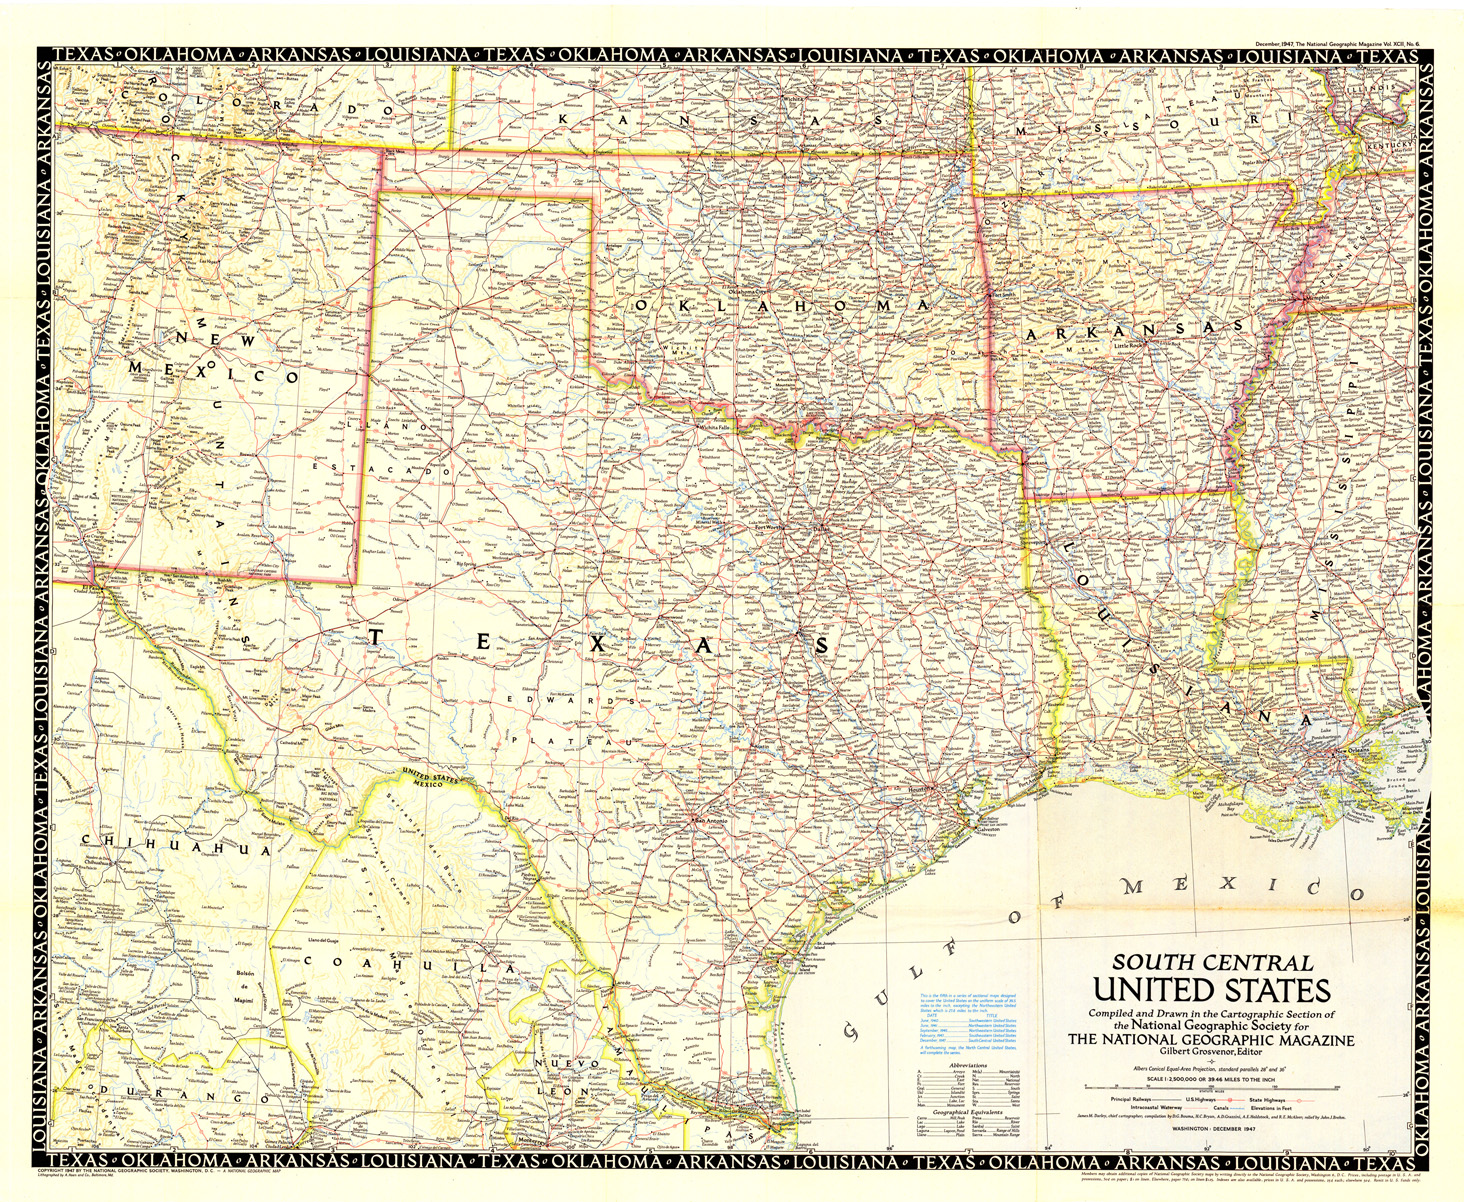 Large Map Of Texas.1948 Highway And Railroad Map